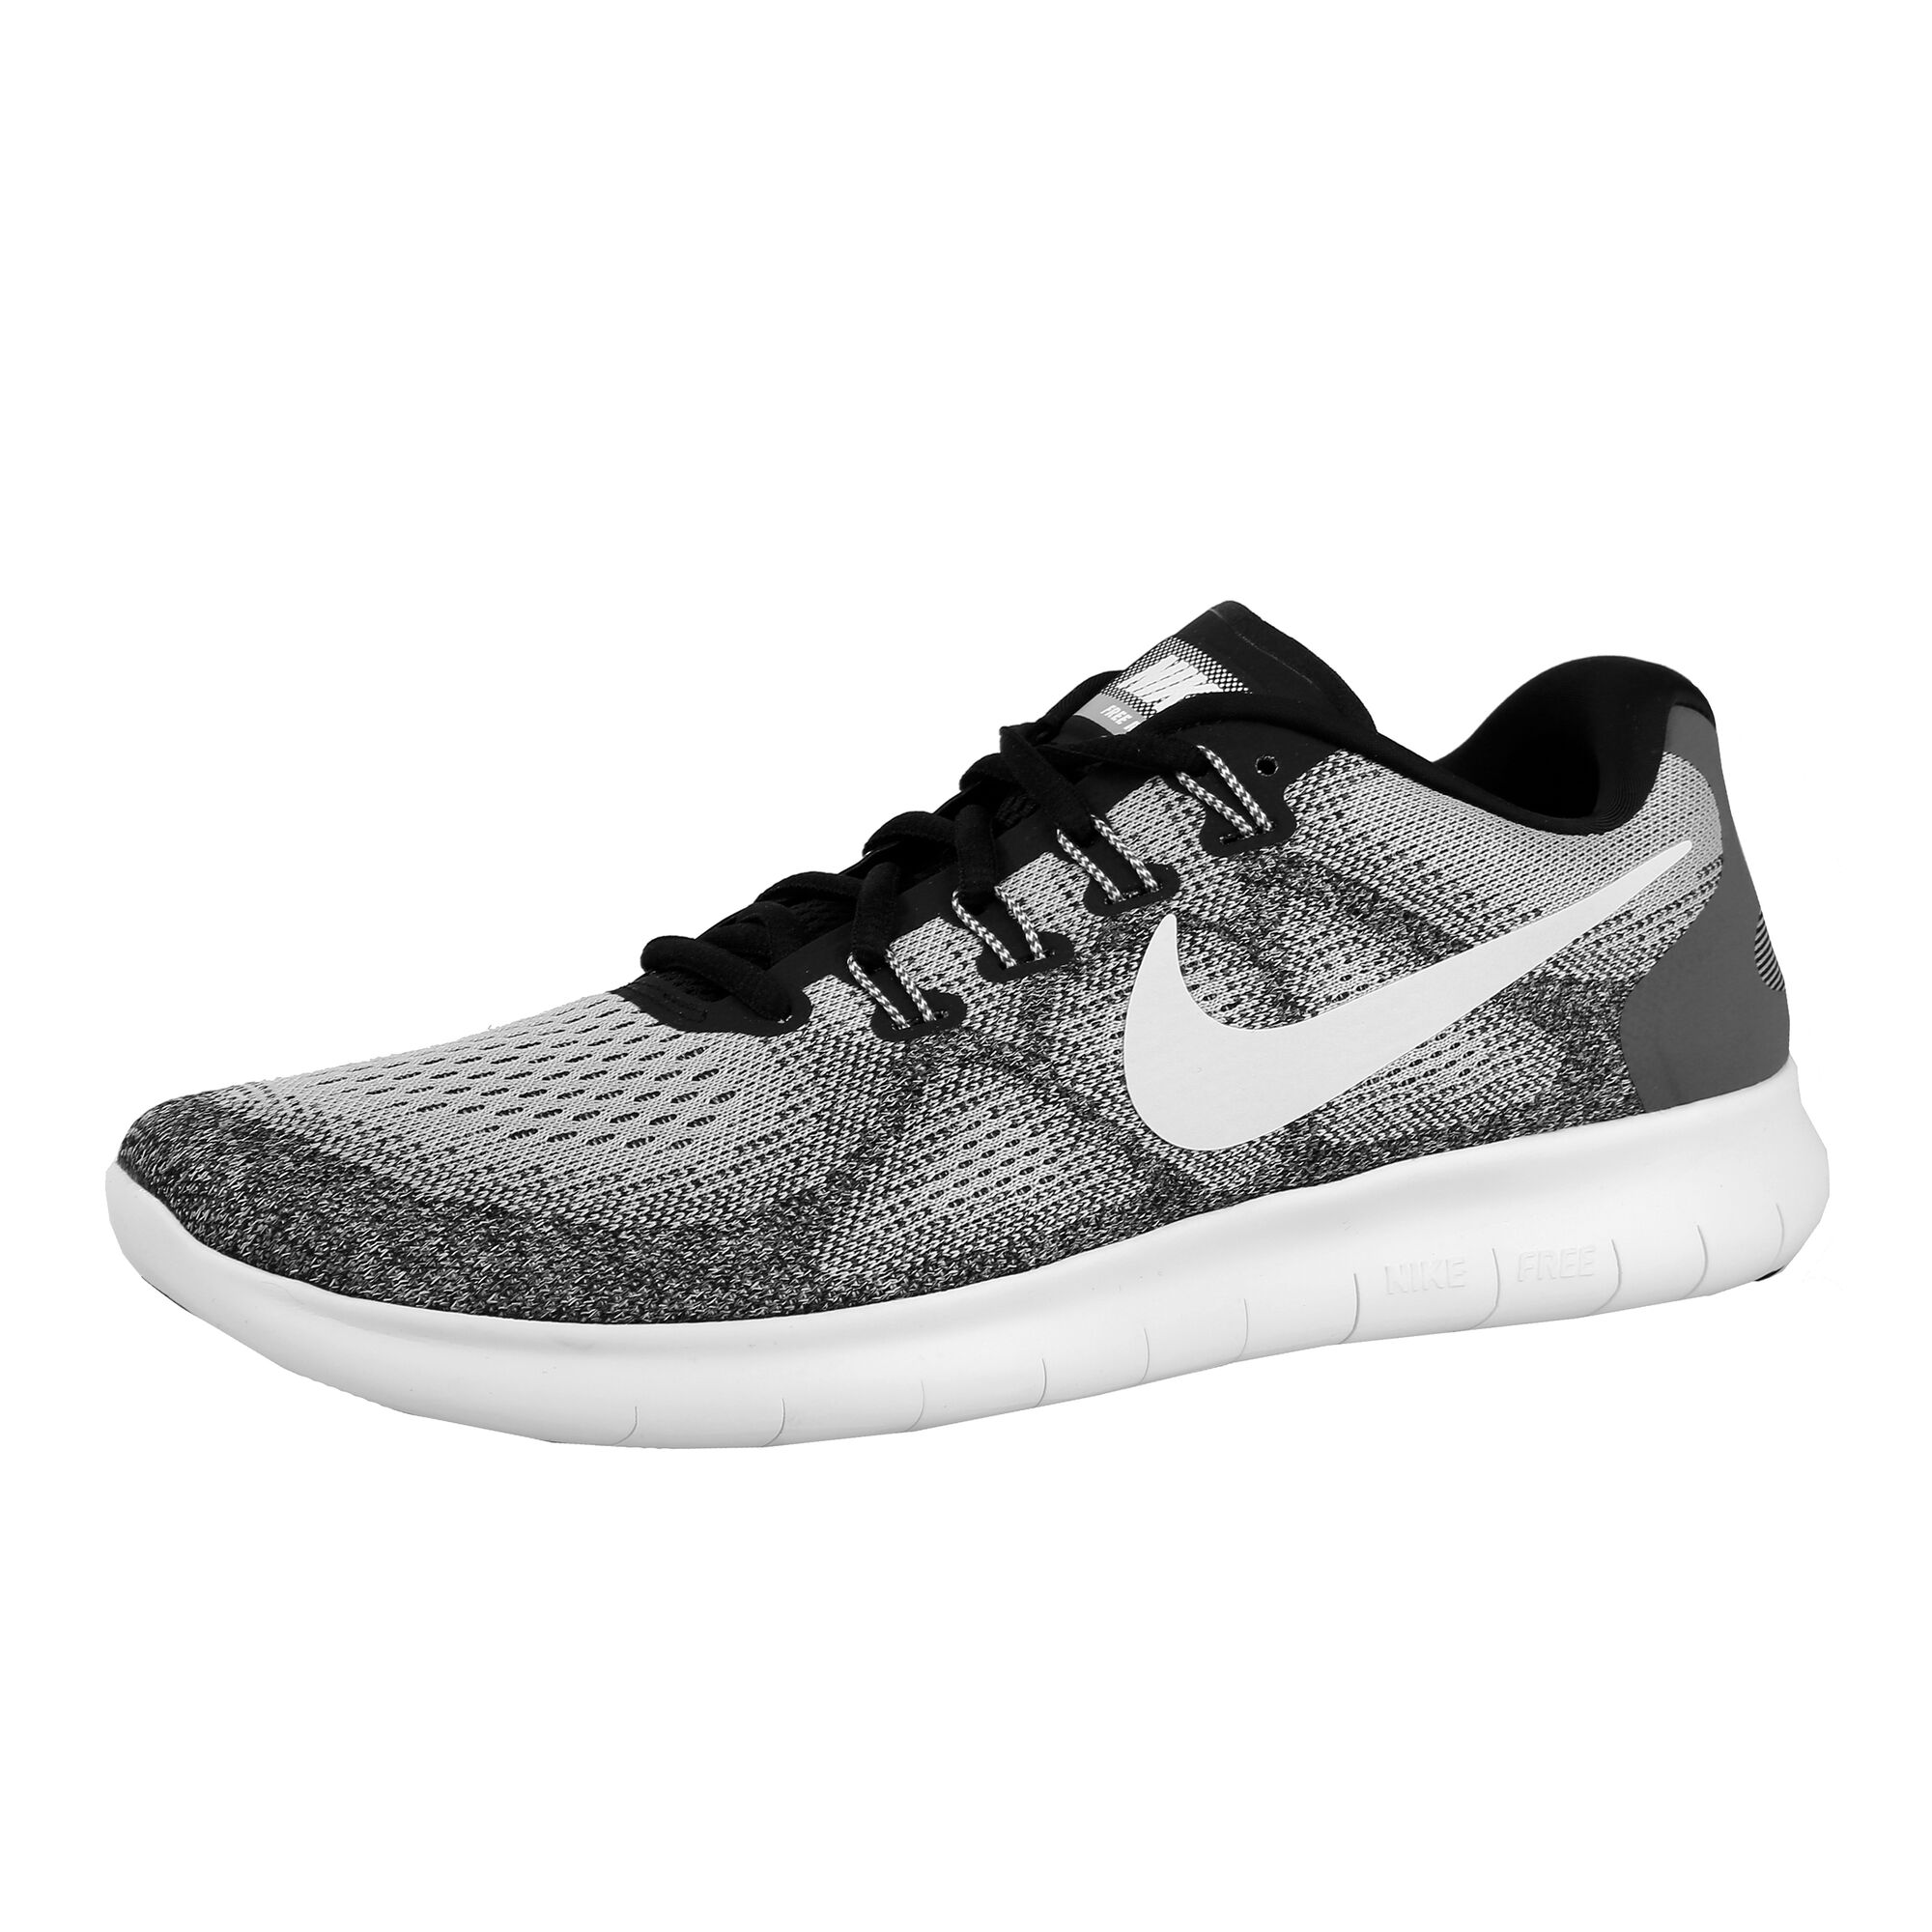 4e620a3db62 buy Nike Free Run 2017 Natural Running Shoe Men - Lightgrey ...